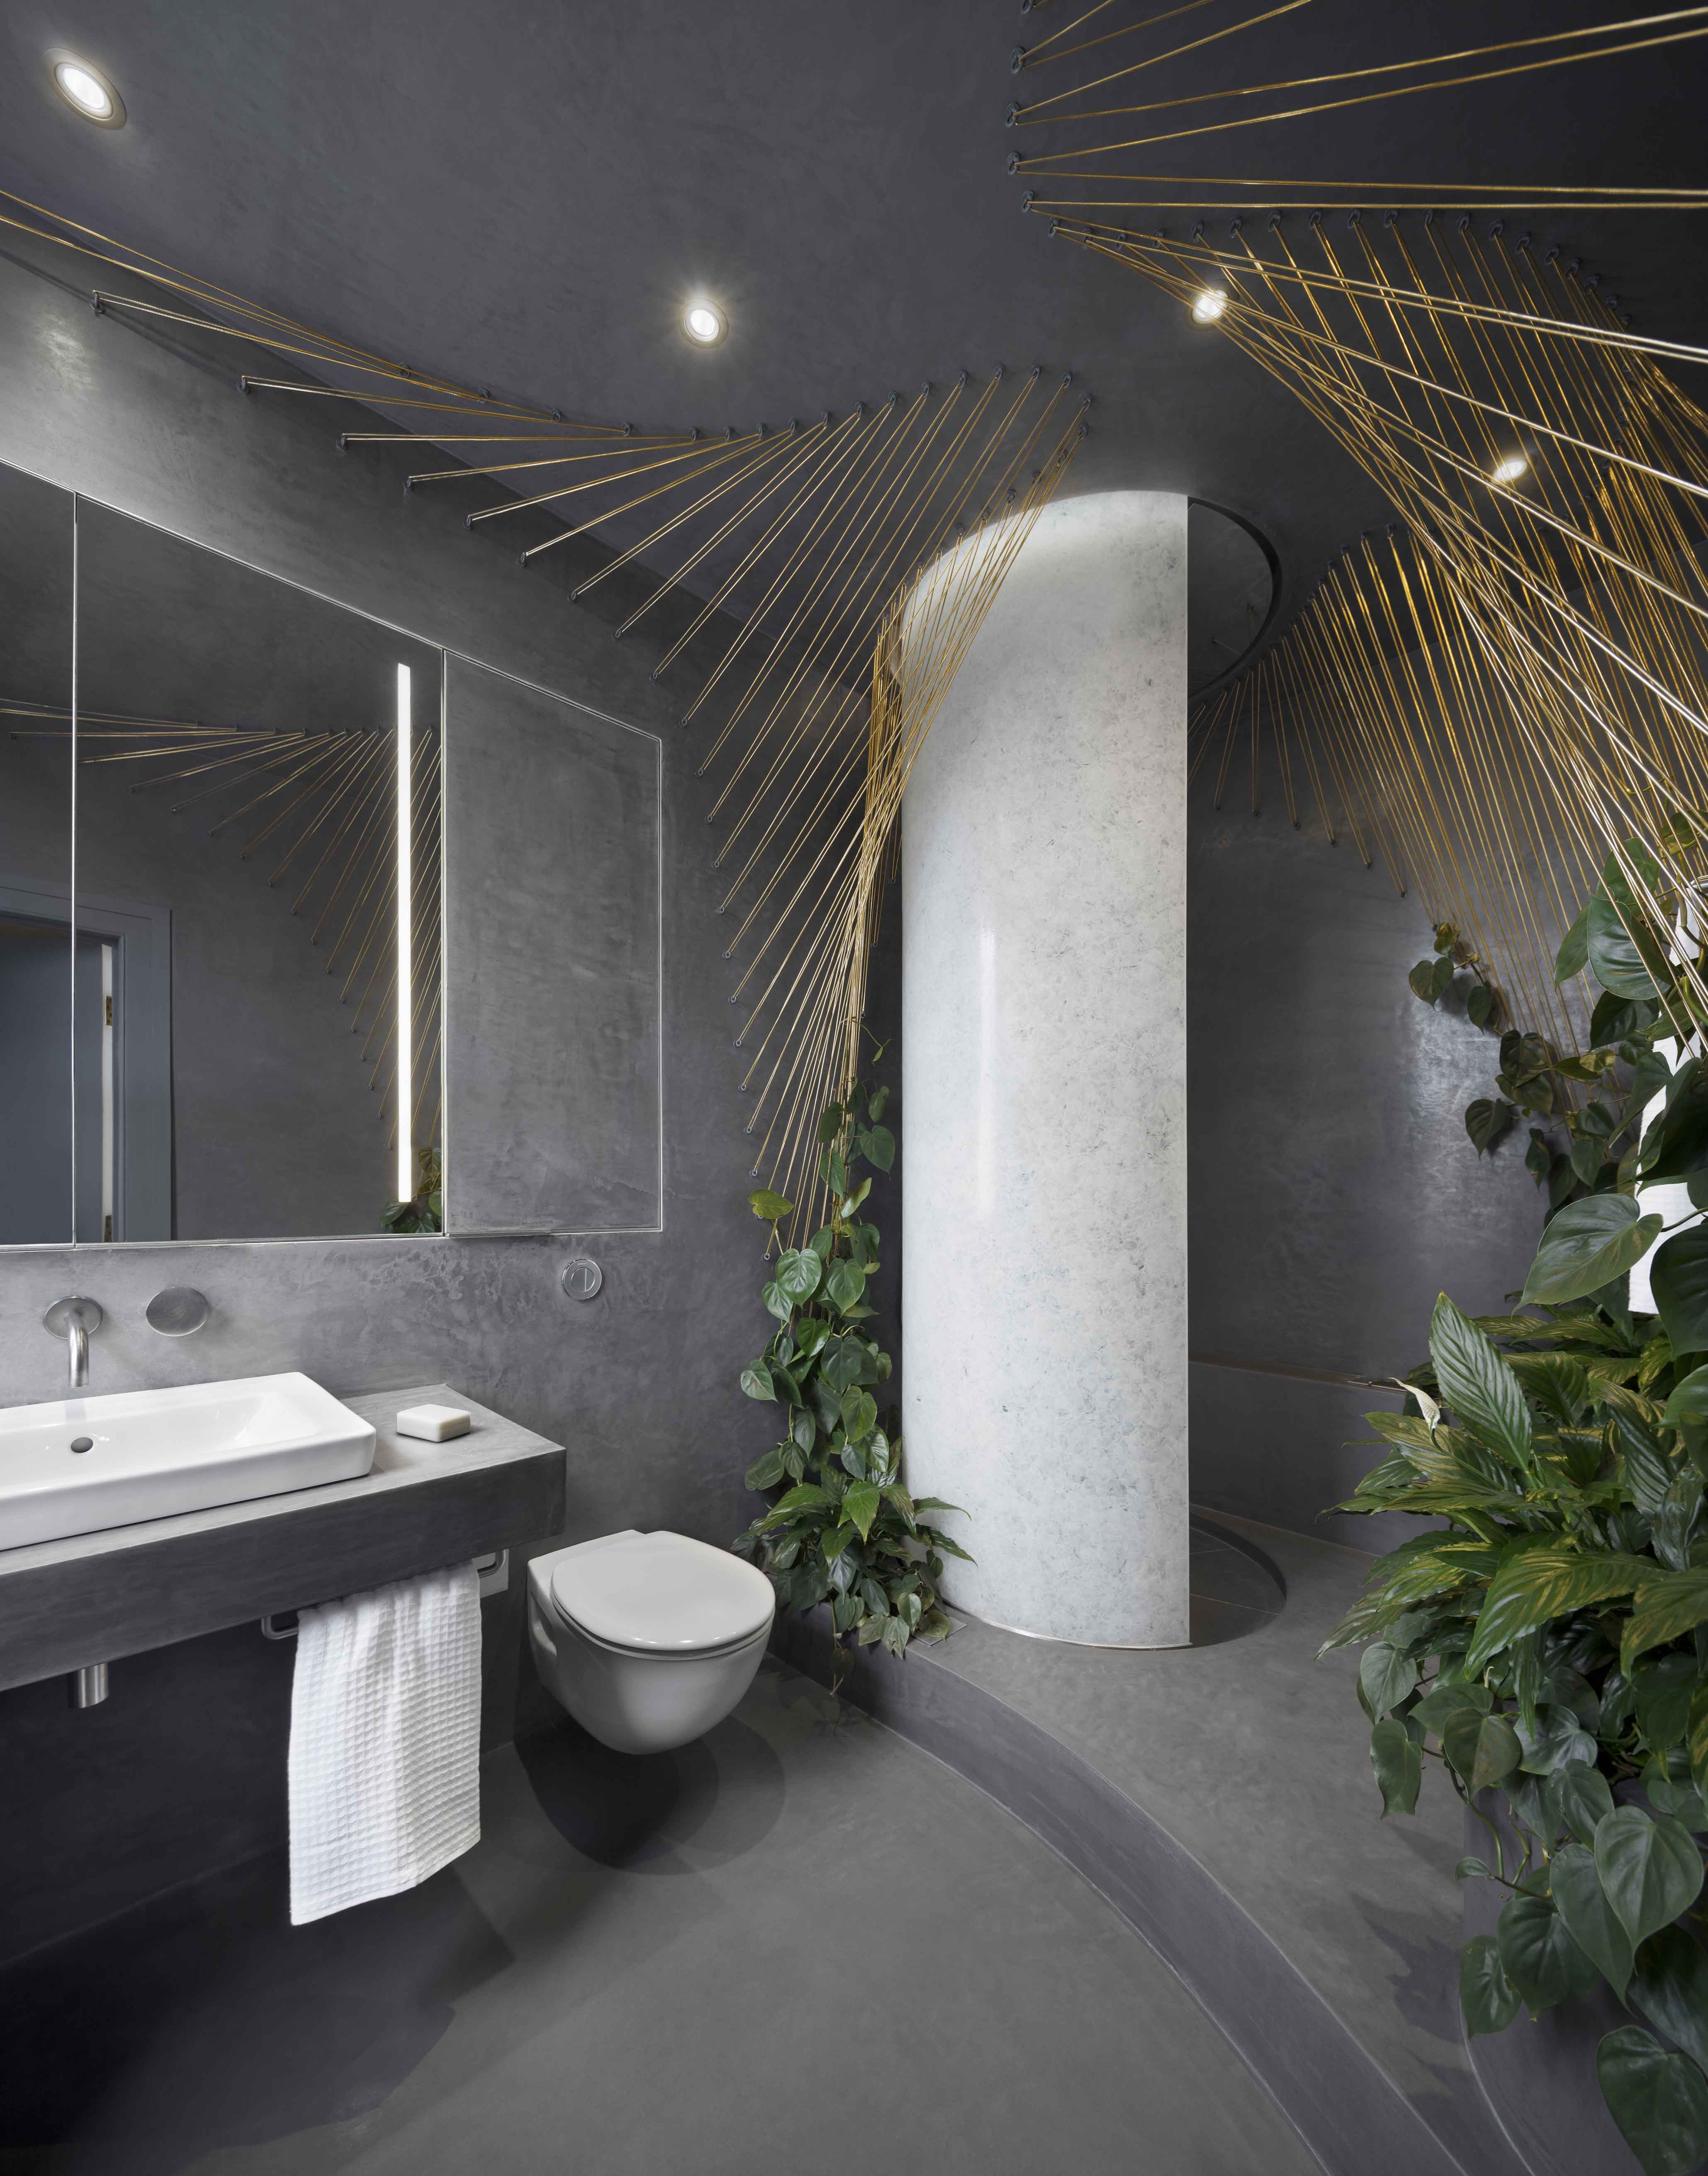 Interior design of outdoor inspired indoor bathroom by Bilska de Beaupuy